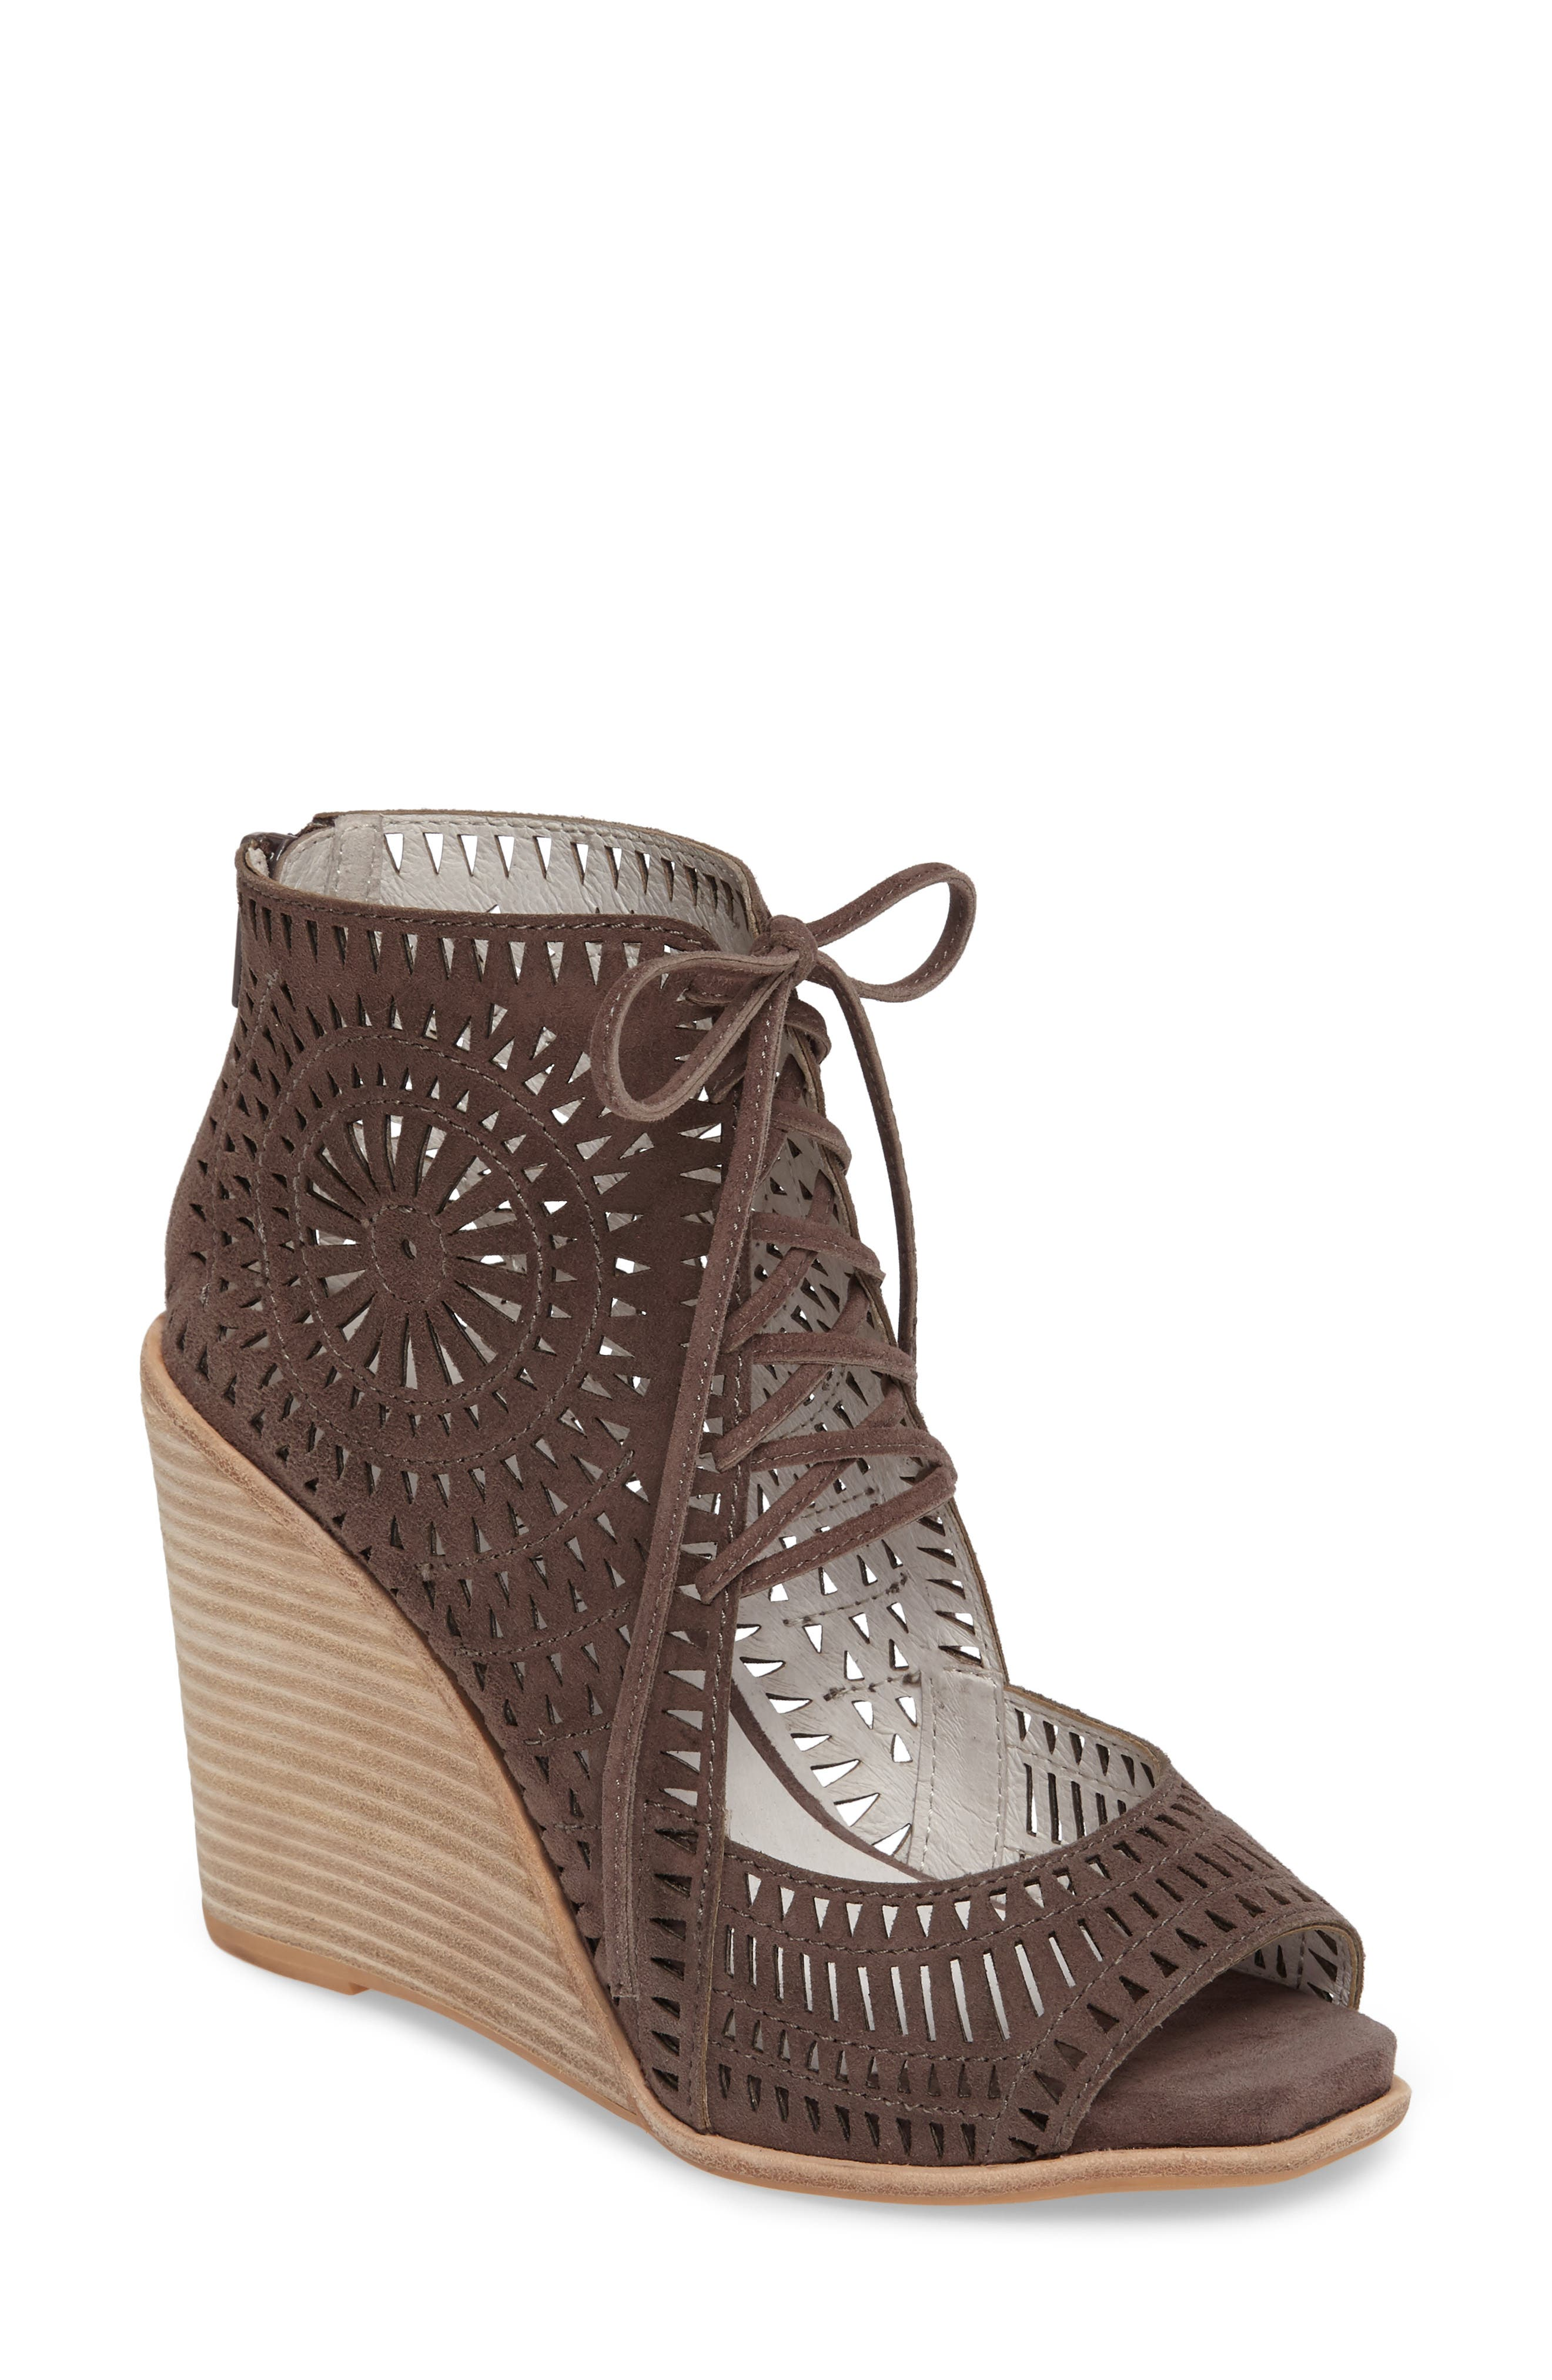 JEFFREY CAMPBELL, Rayos Perforated Wedge Sandal, Main thumbnail 1, color, 200